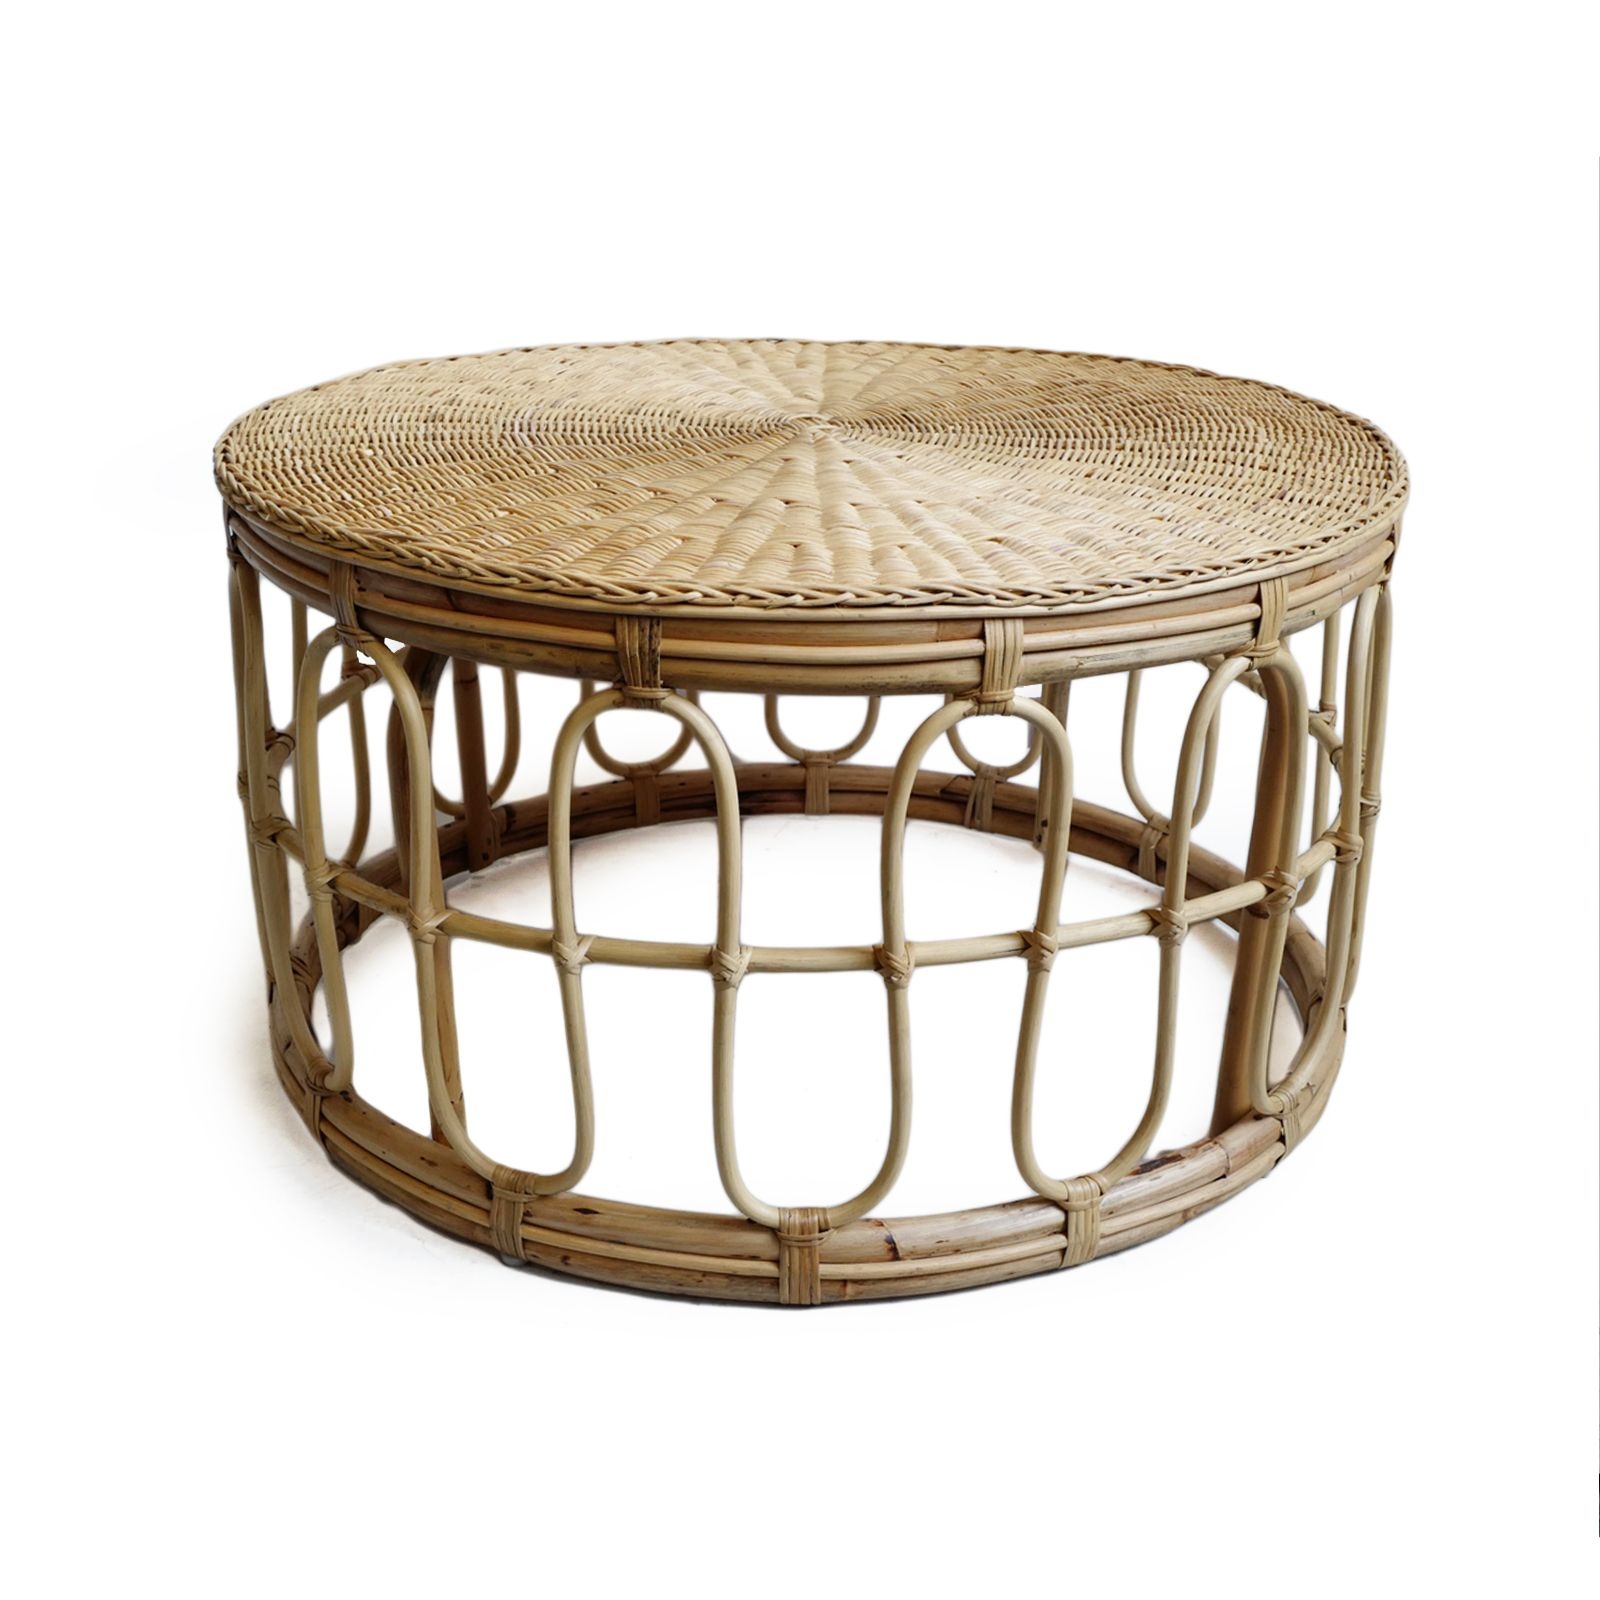 Round Rattan Coffee Table In 2020 Rattan Coffee Table Wicker